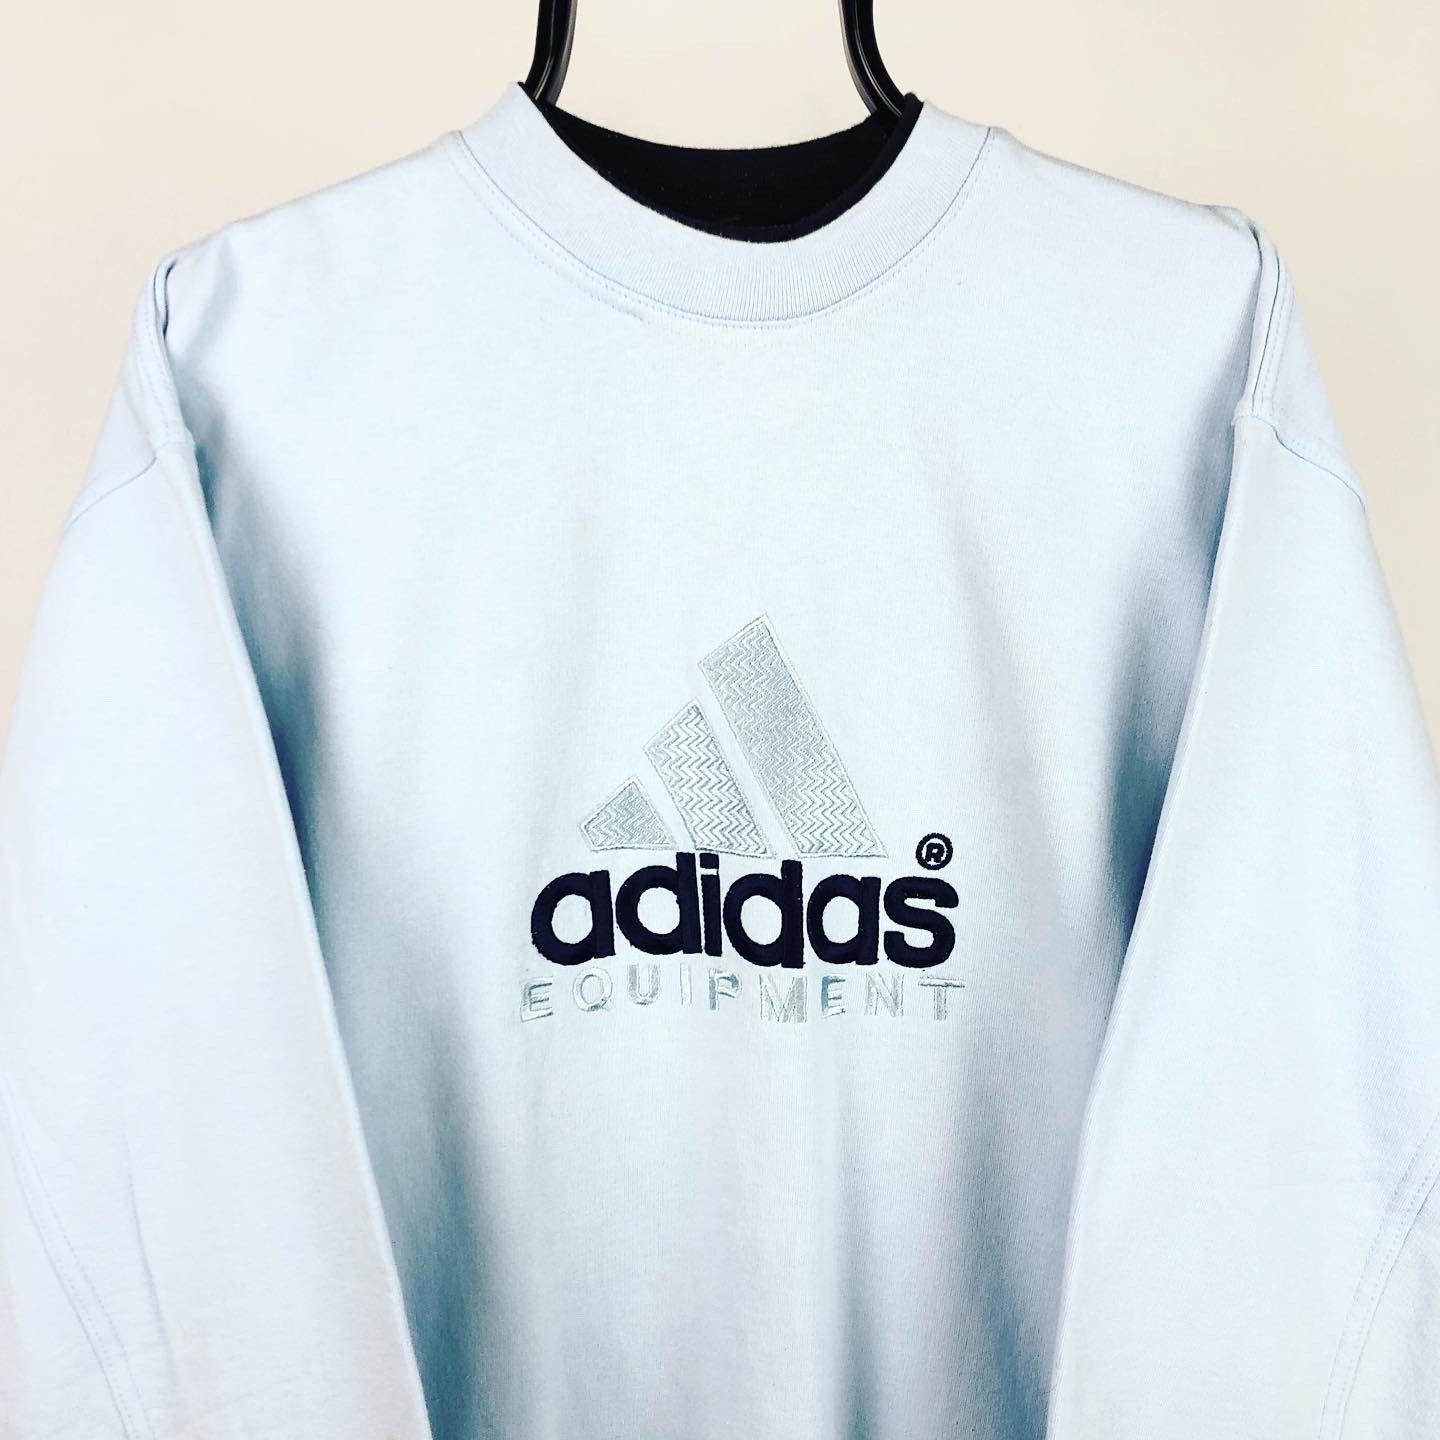 Vintage 90s Adidas Equipment Spellout Sweatshirt in Baby Blue - Men's Large/Women's XL